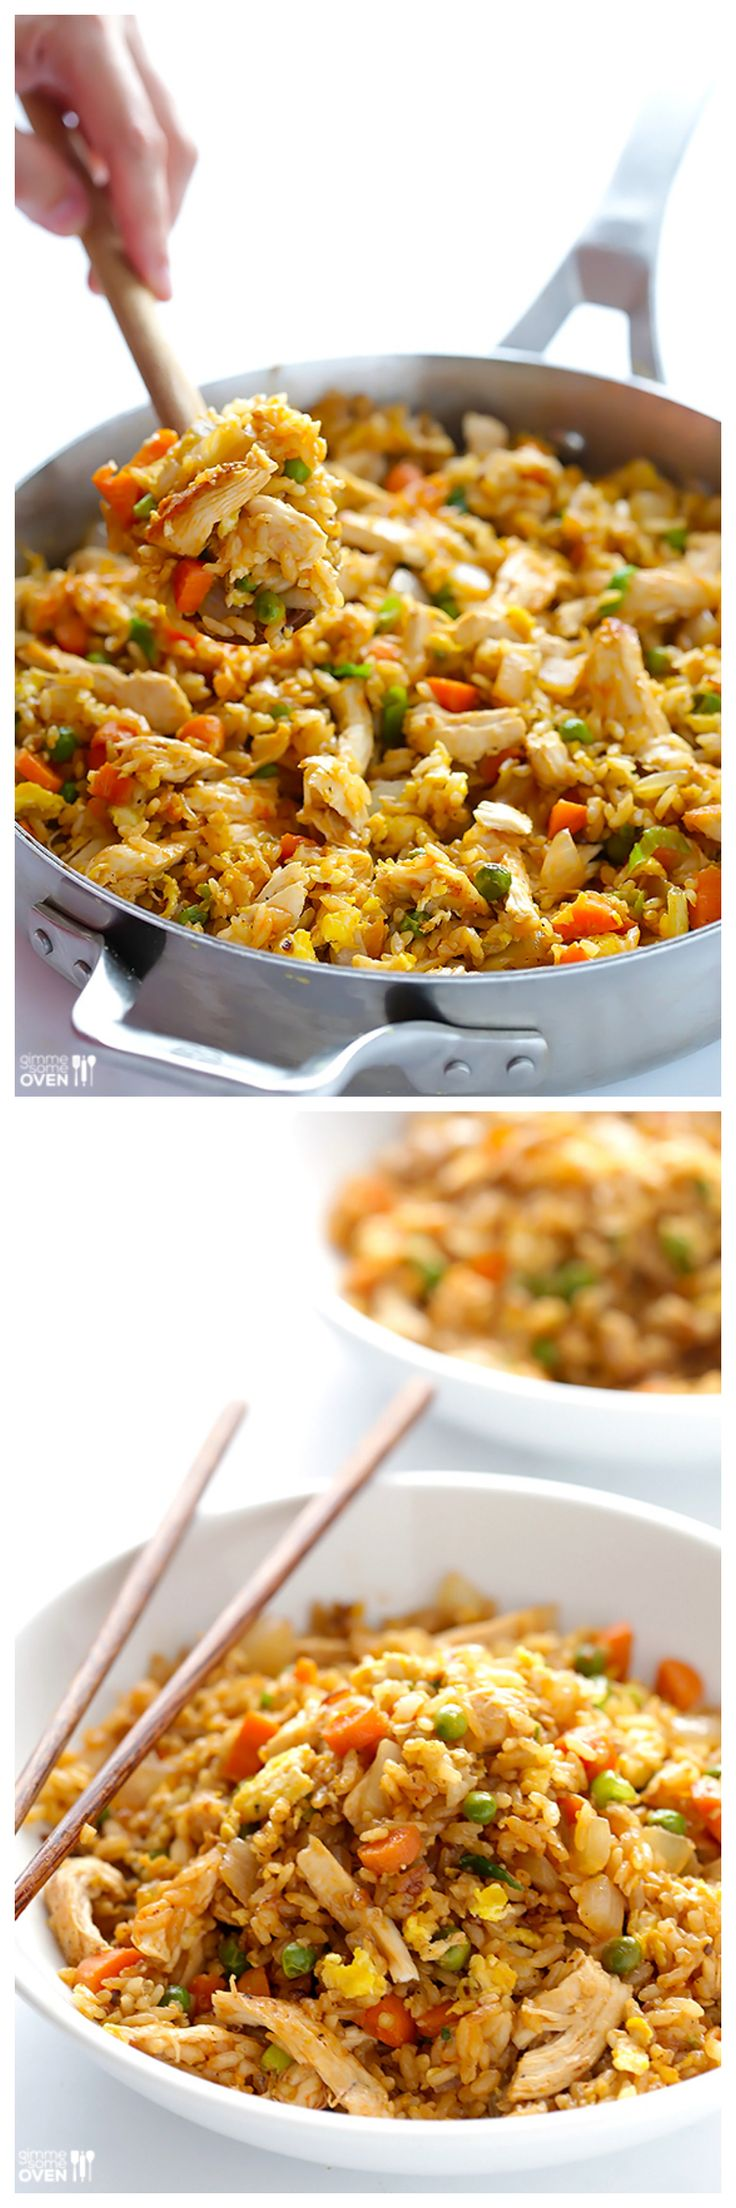 Spicy Chicken Fried Rice -- delicious and easy fried rice is kicked up a notch with some sriracha! | gimmesomeoven.com